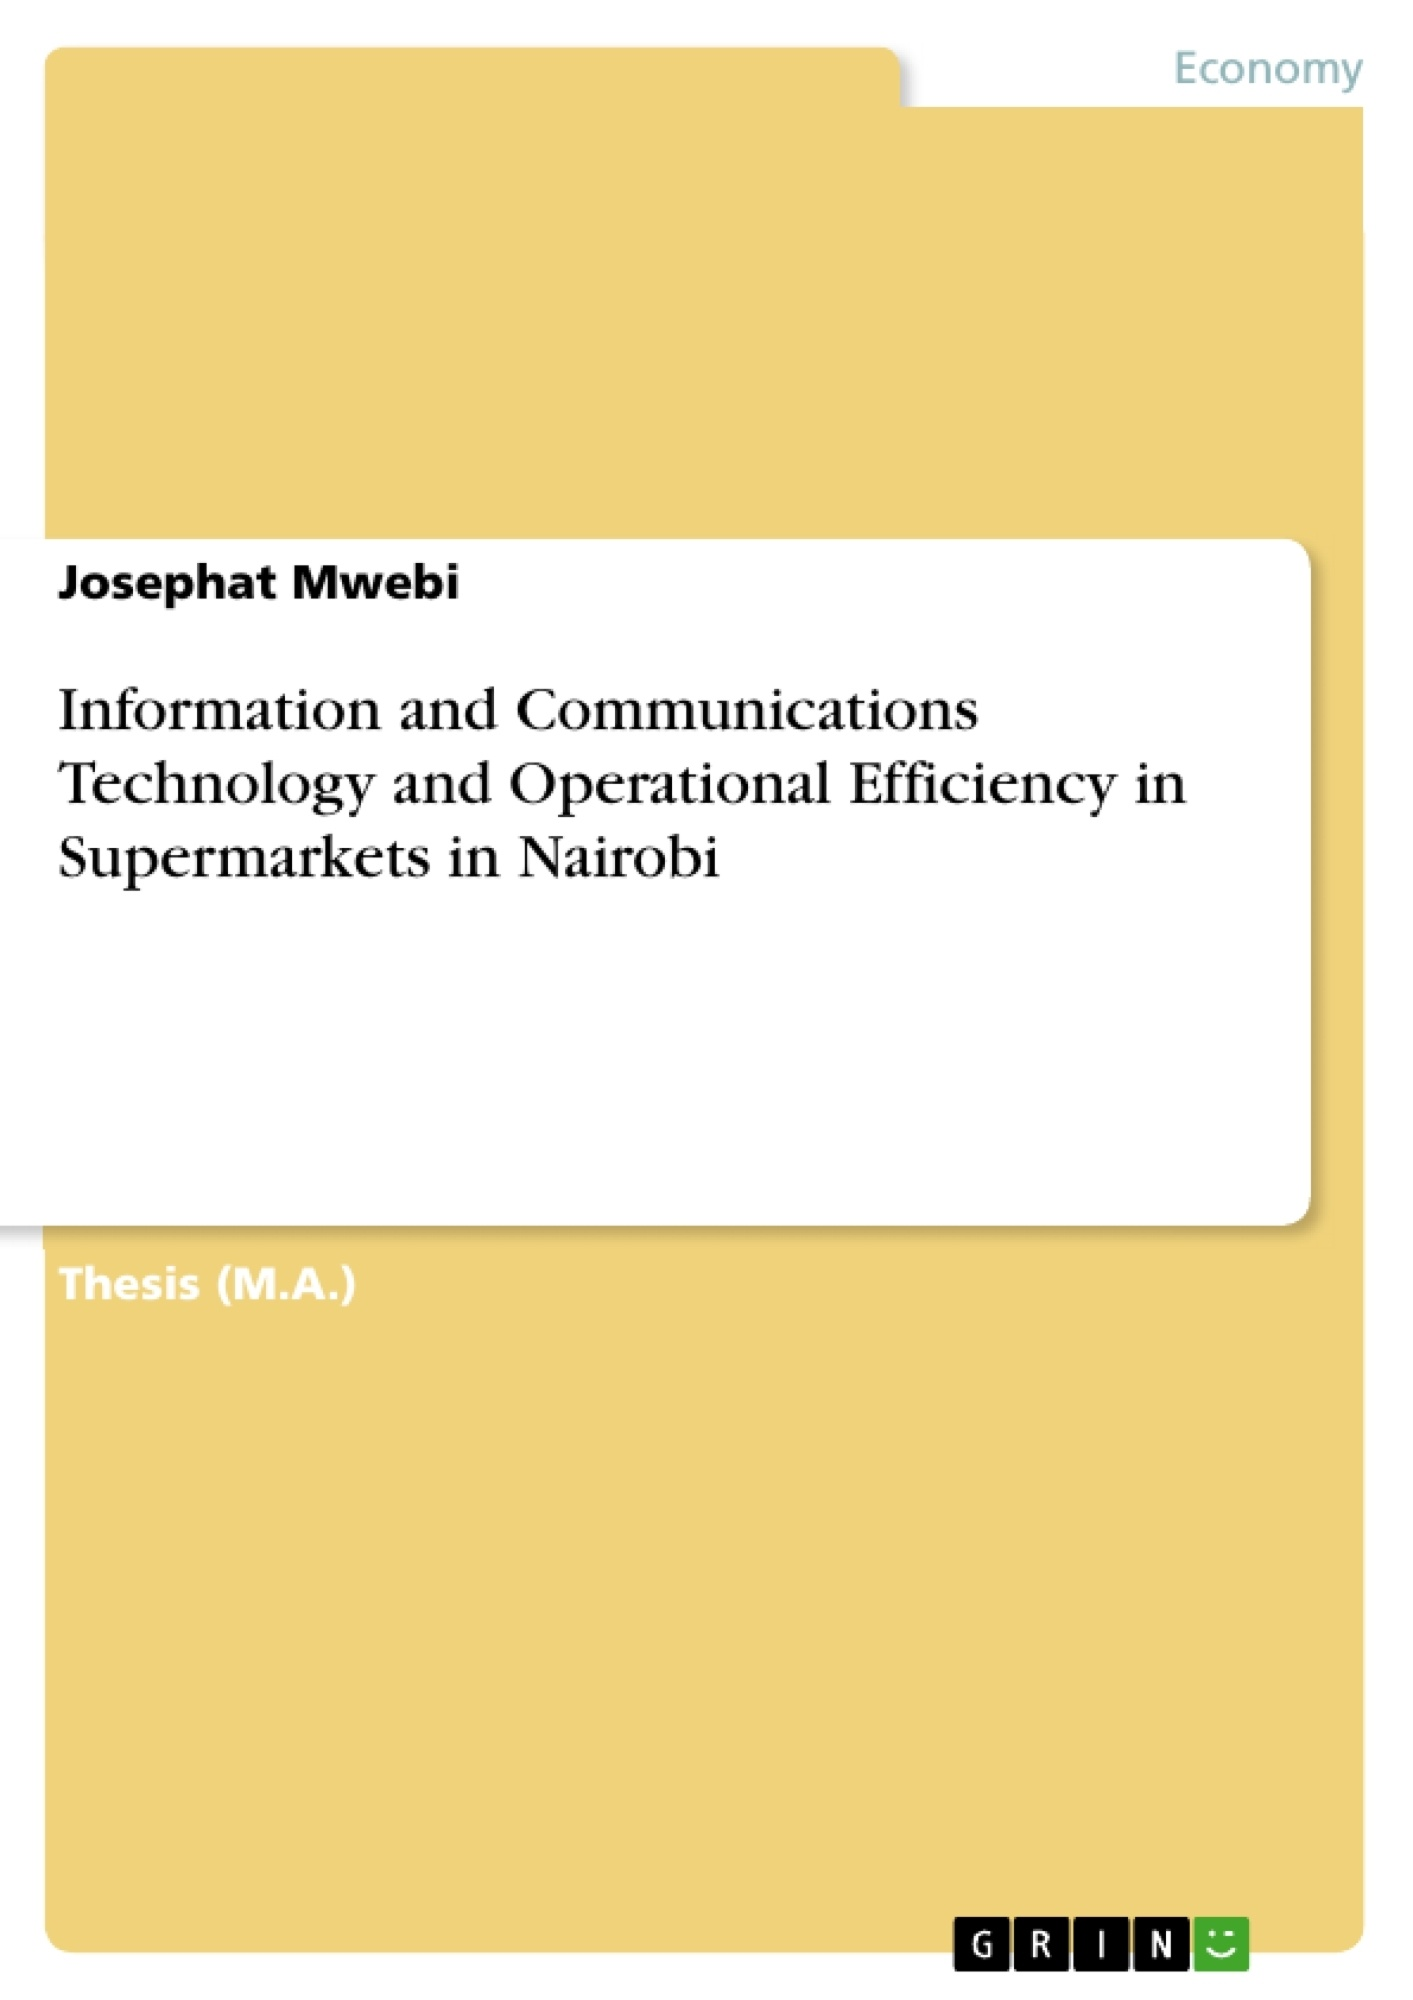 Title: Information and Communications Technology and Operational Efficiency in Supermarkets in Nairobi